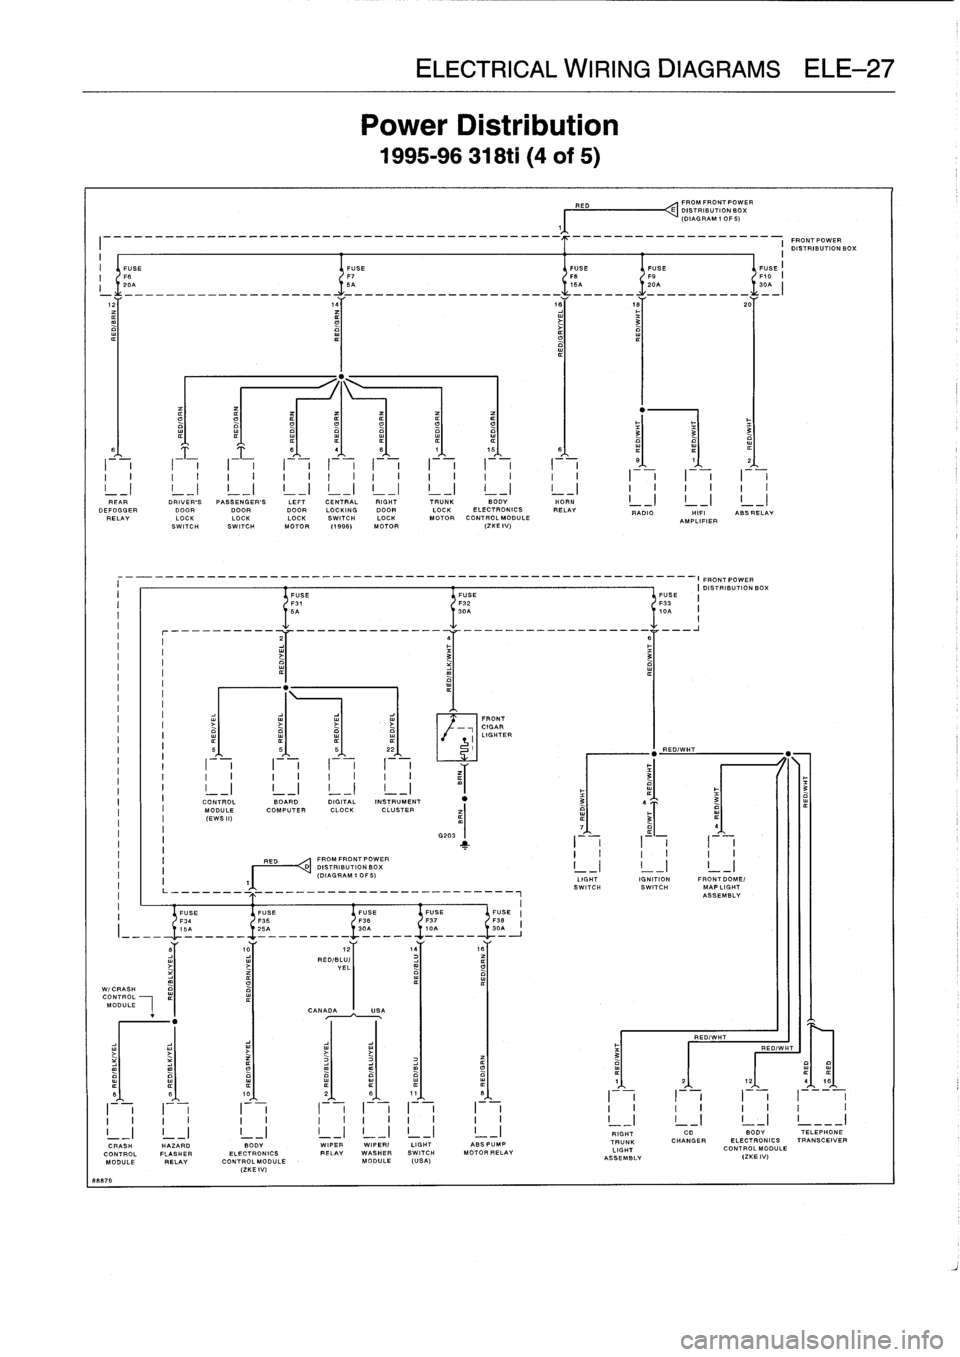 E36 Zke Wiring Diagram Bmw 1996 323i Workshop Manual